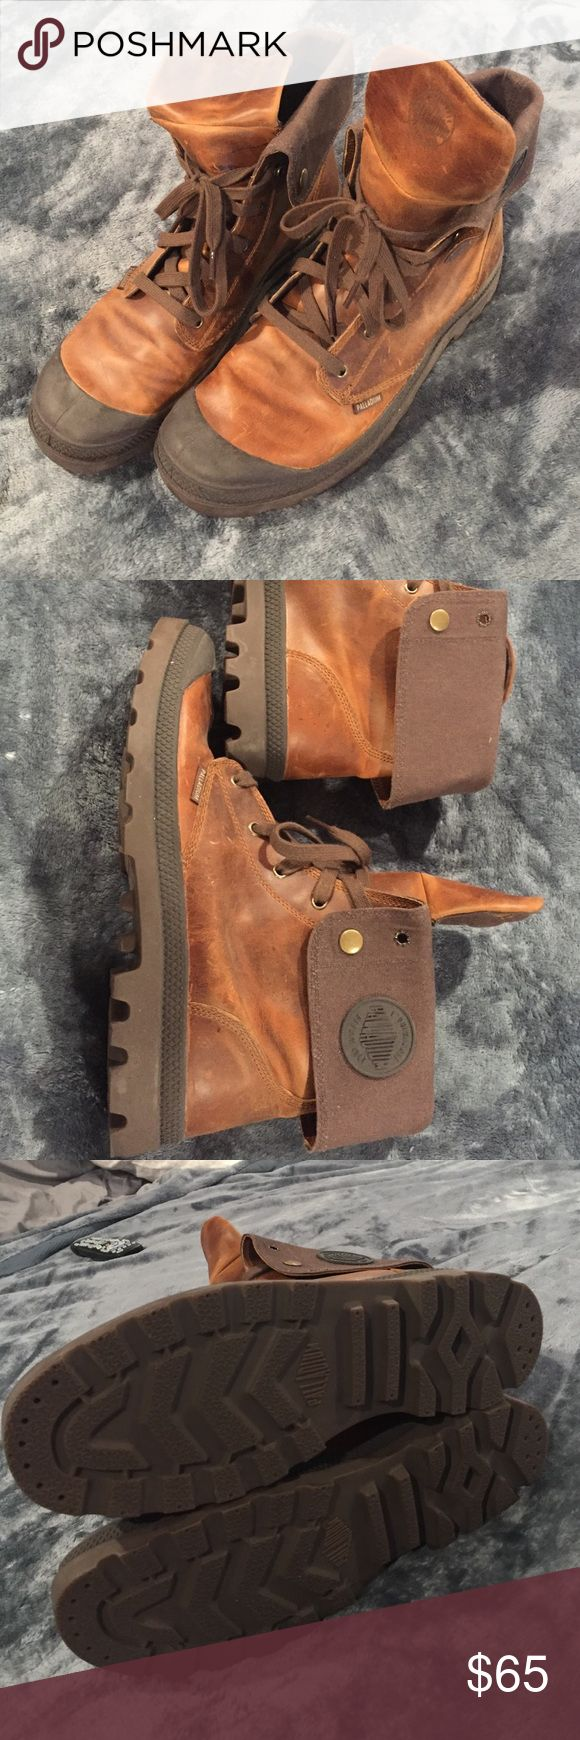 Mens Size 13 Palladium Boots. Medium brown See picture, rubber soles are perfectly in tact. They've been sitting in the closet. Pretty much new without tags. Medium brown, dark brown fold over, rubber toe. Mens Size 13. Sorry, no trades at the moment. Palladium Shoes Boots